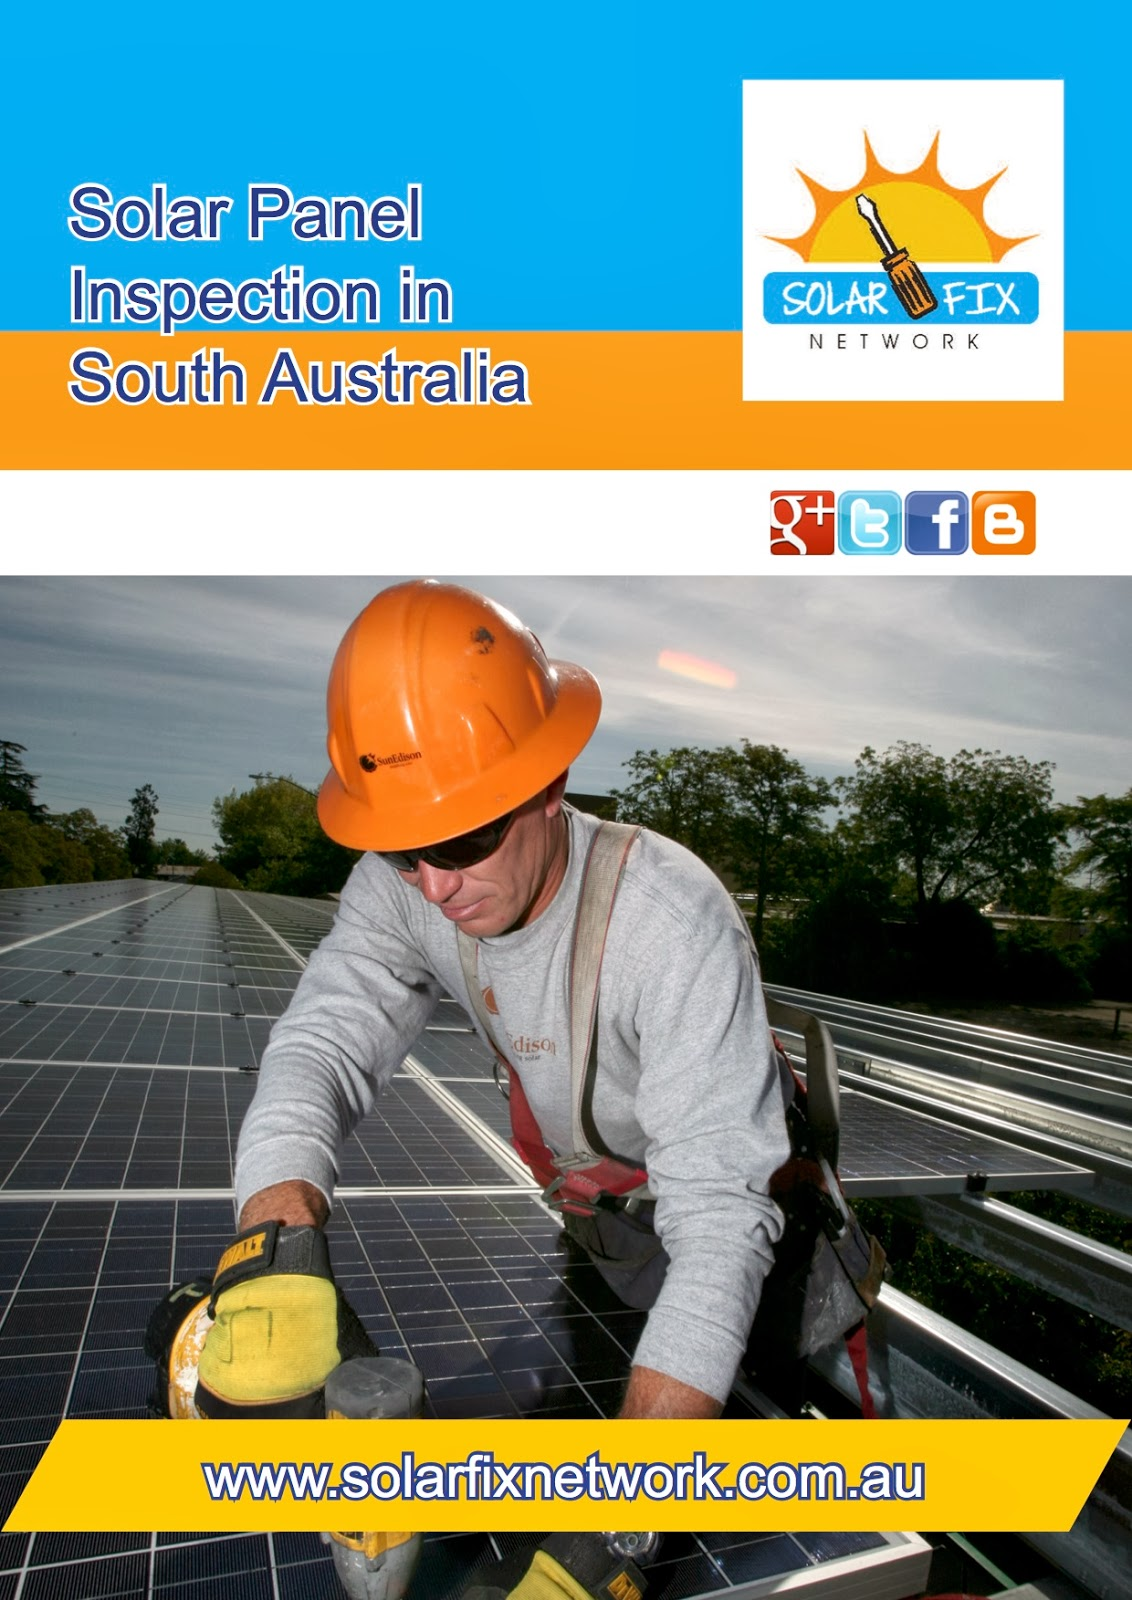 Solar Fix Network are the leading solar panel inspection and maintenance firm in Adelaide